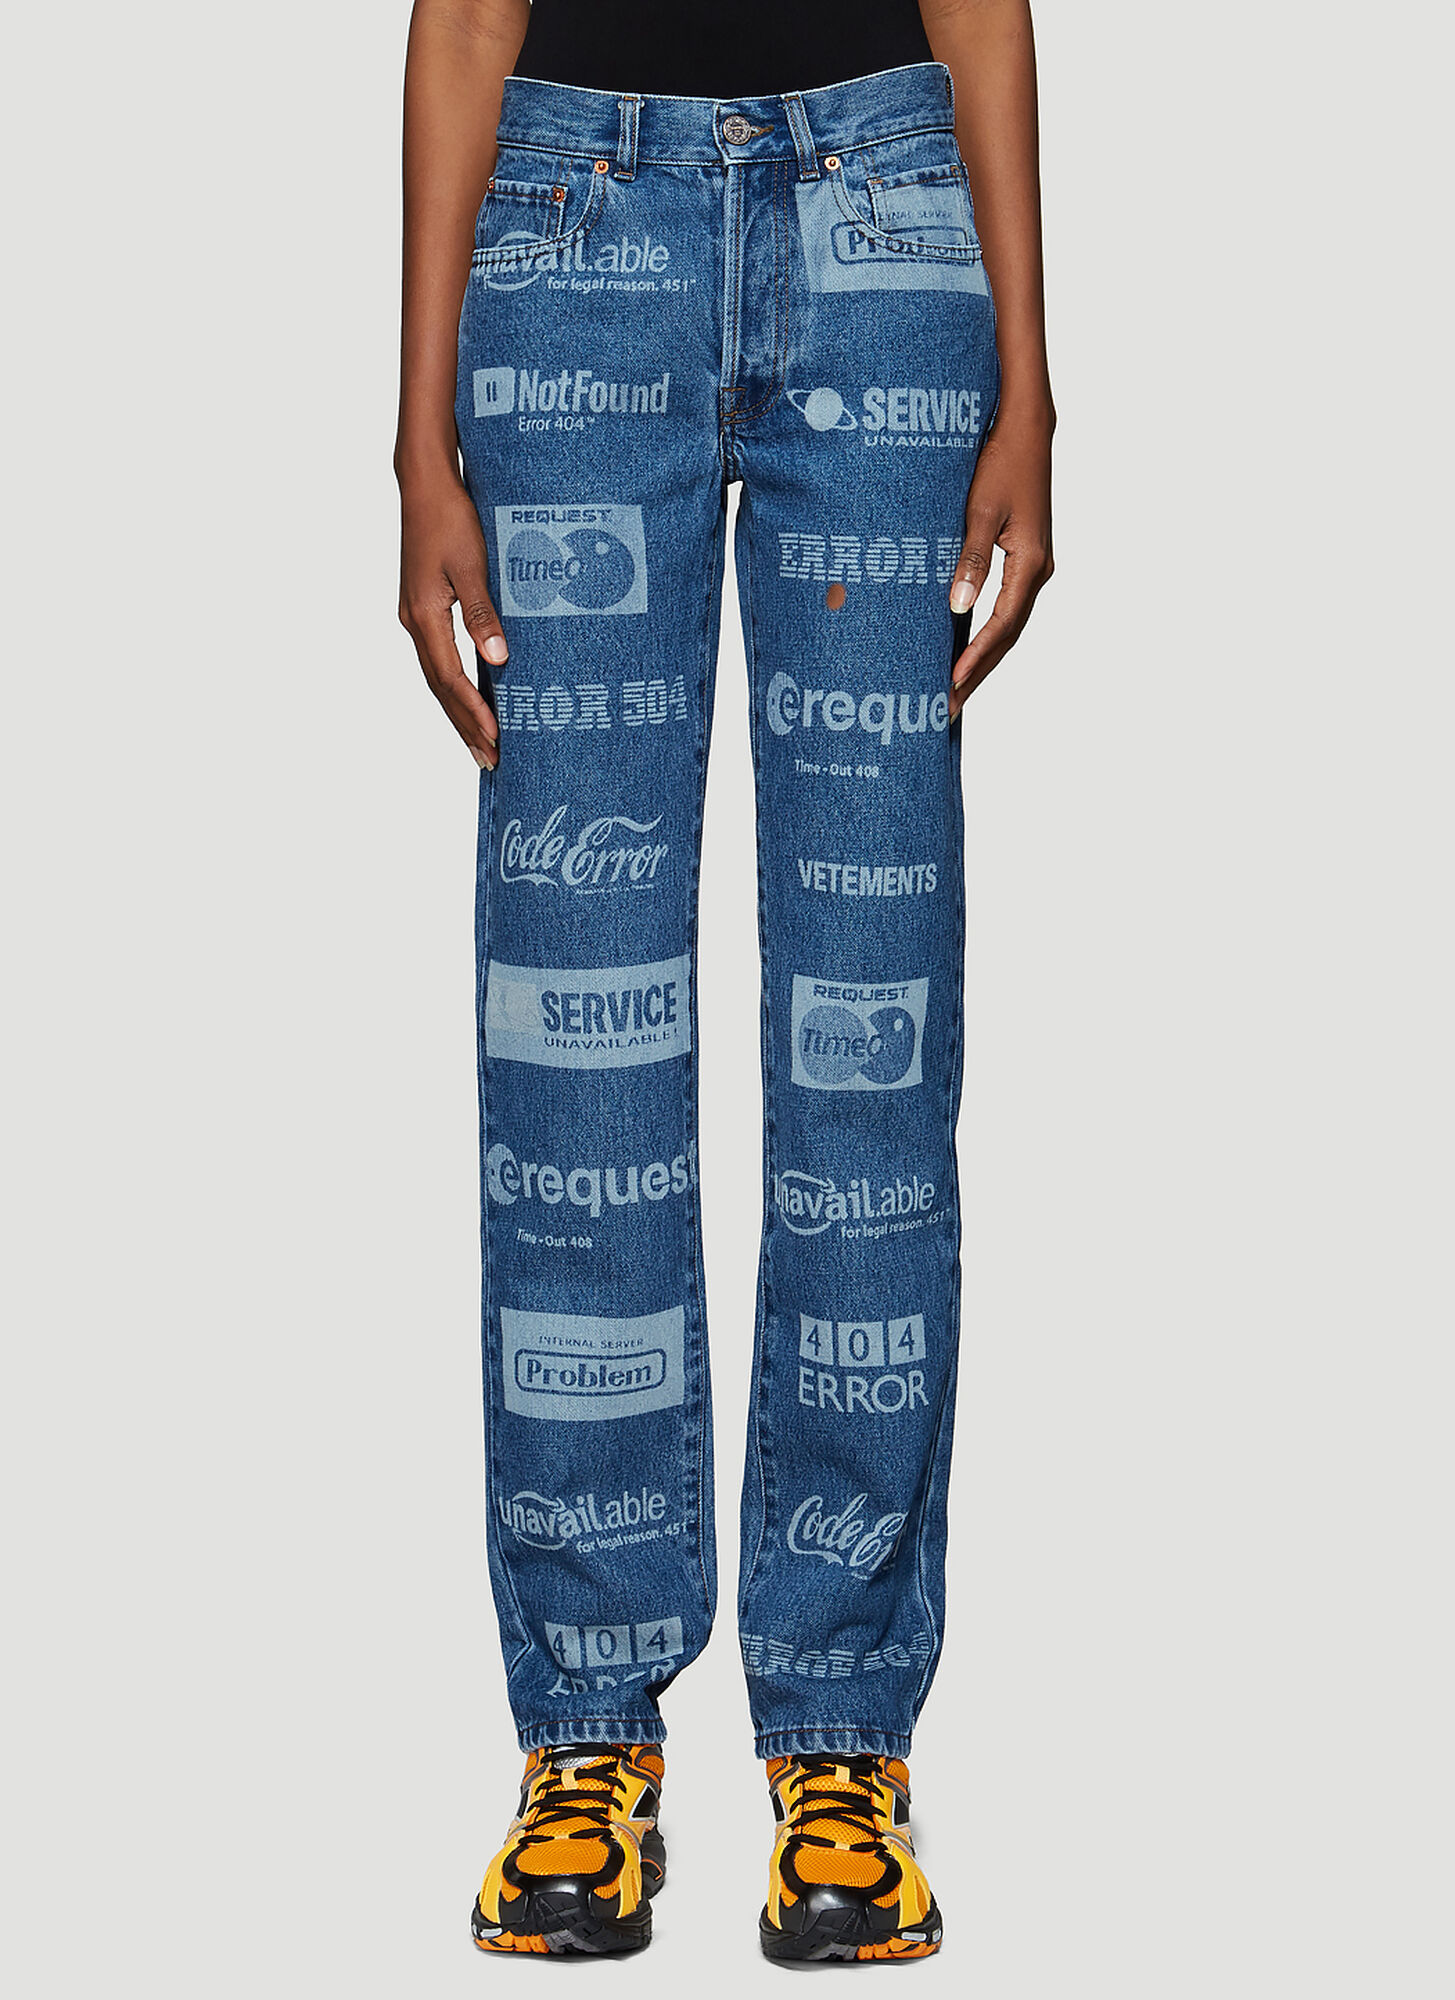 Vetements Branded Jeans in Blue